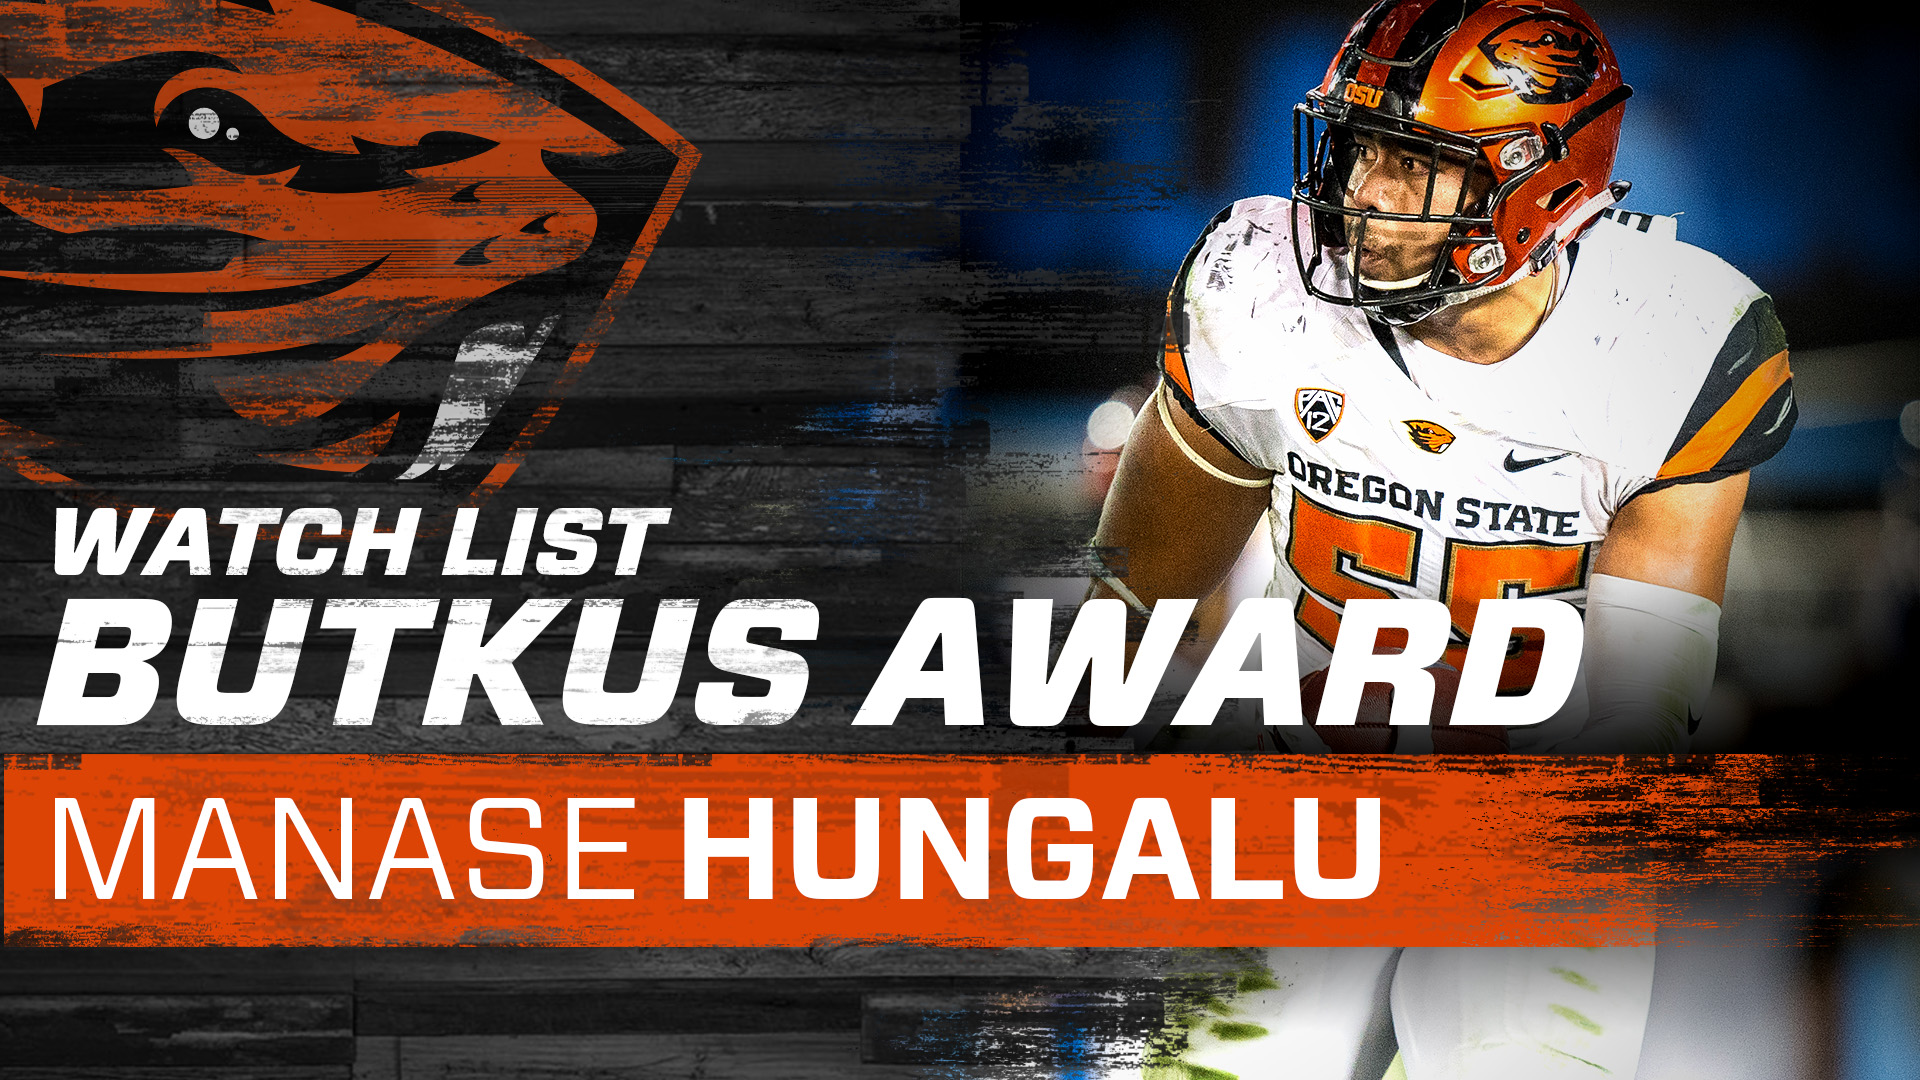 Manase_hungalu_butkus_award_watch_list